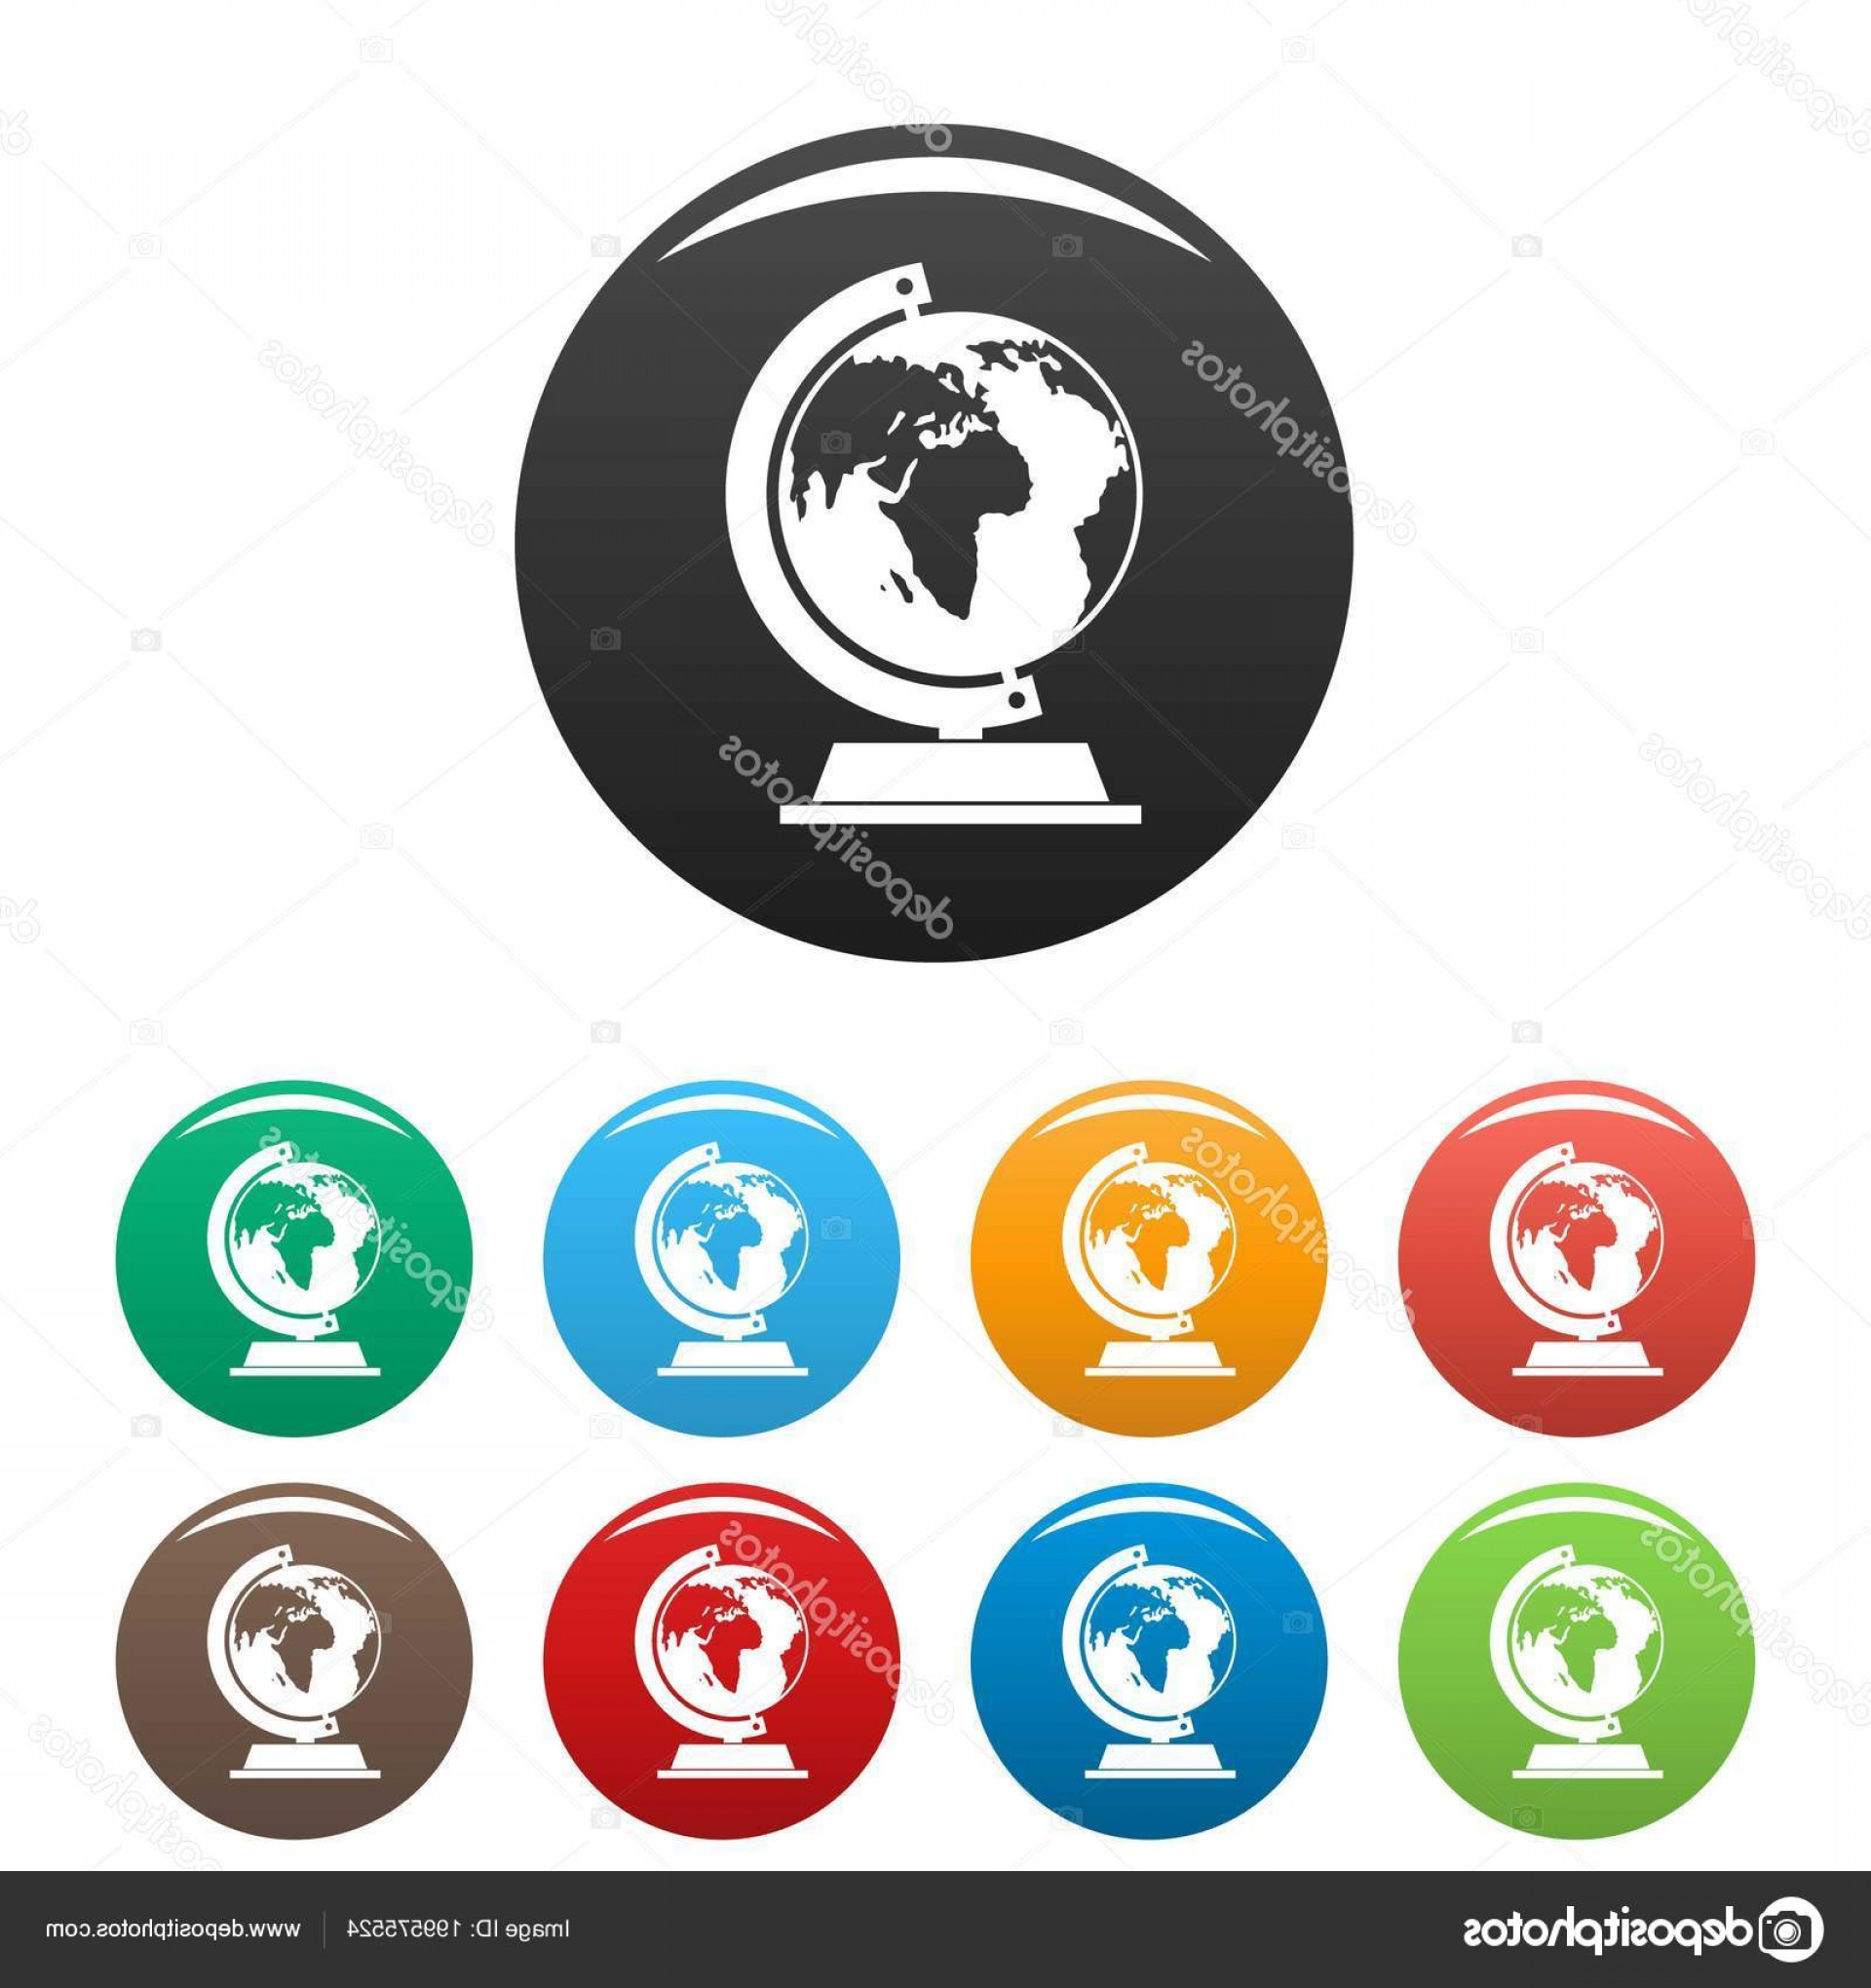 One Color Simple Vector Globe: Stock Illustration Globe Icons Set Color Vector